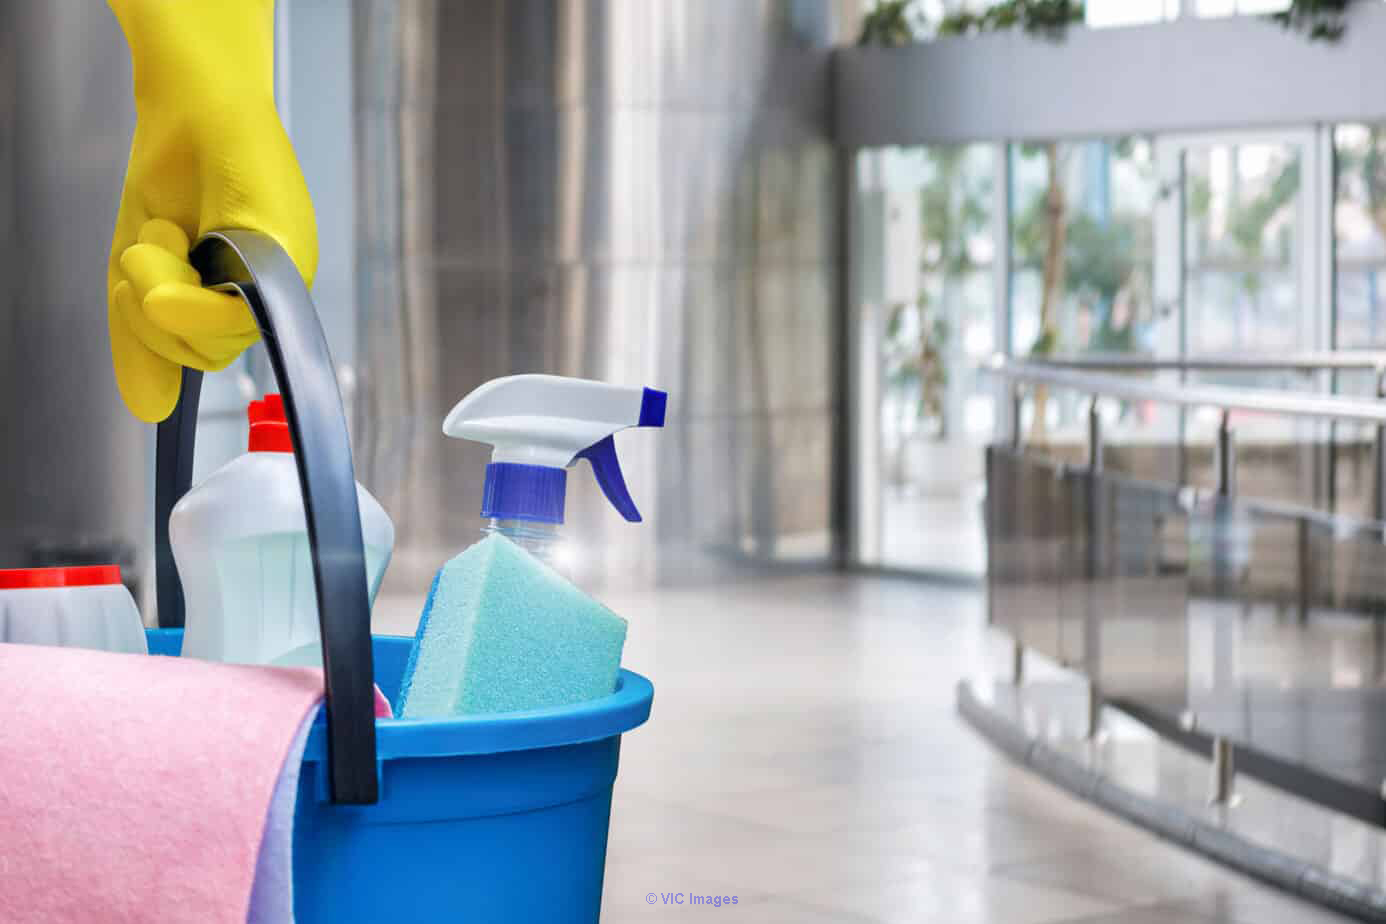 Cleaning Services – unique services Calgary, Alberta, Canada Classifieds